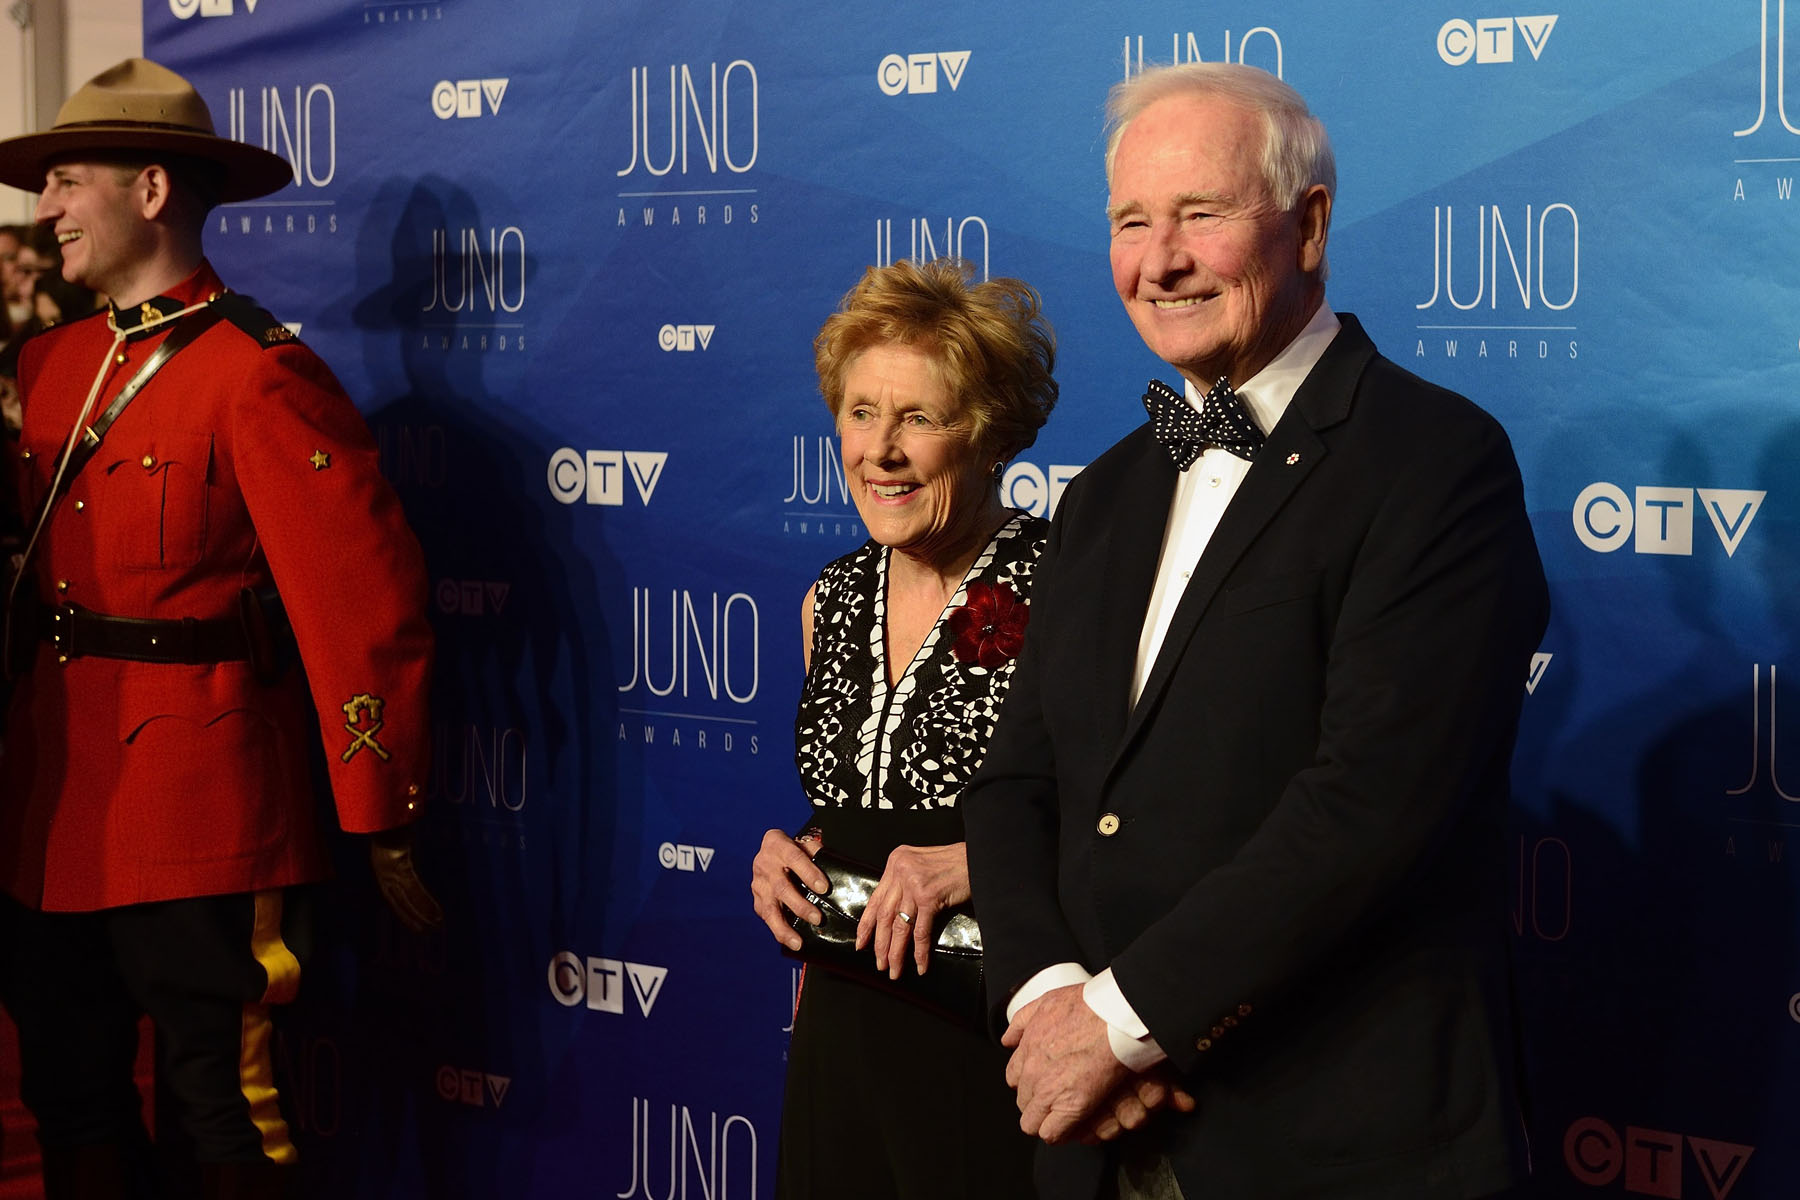 Their Excellencies posed for a photo before walking the Red Carpet at the 2017 JUNO Awards.